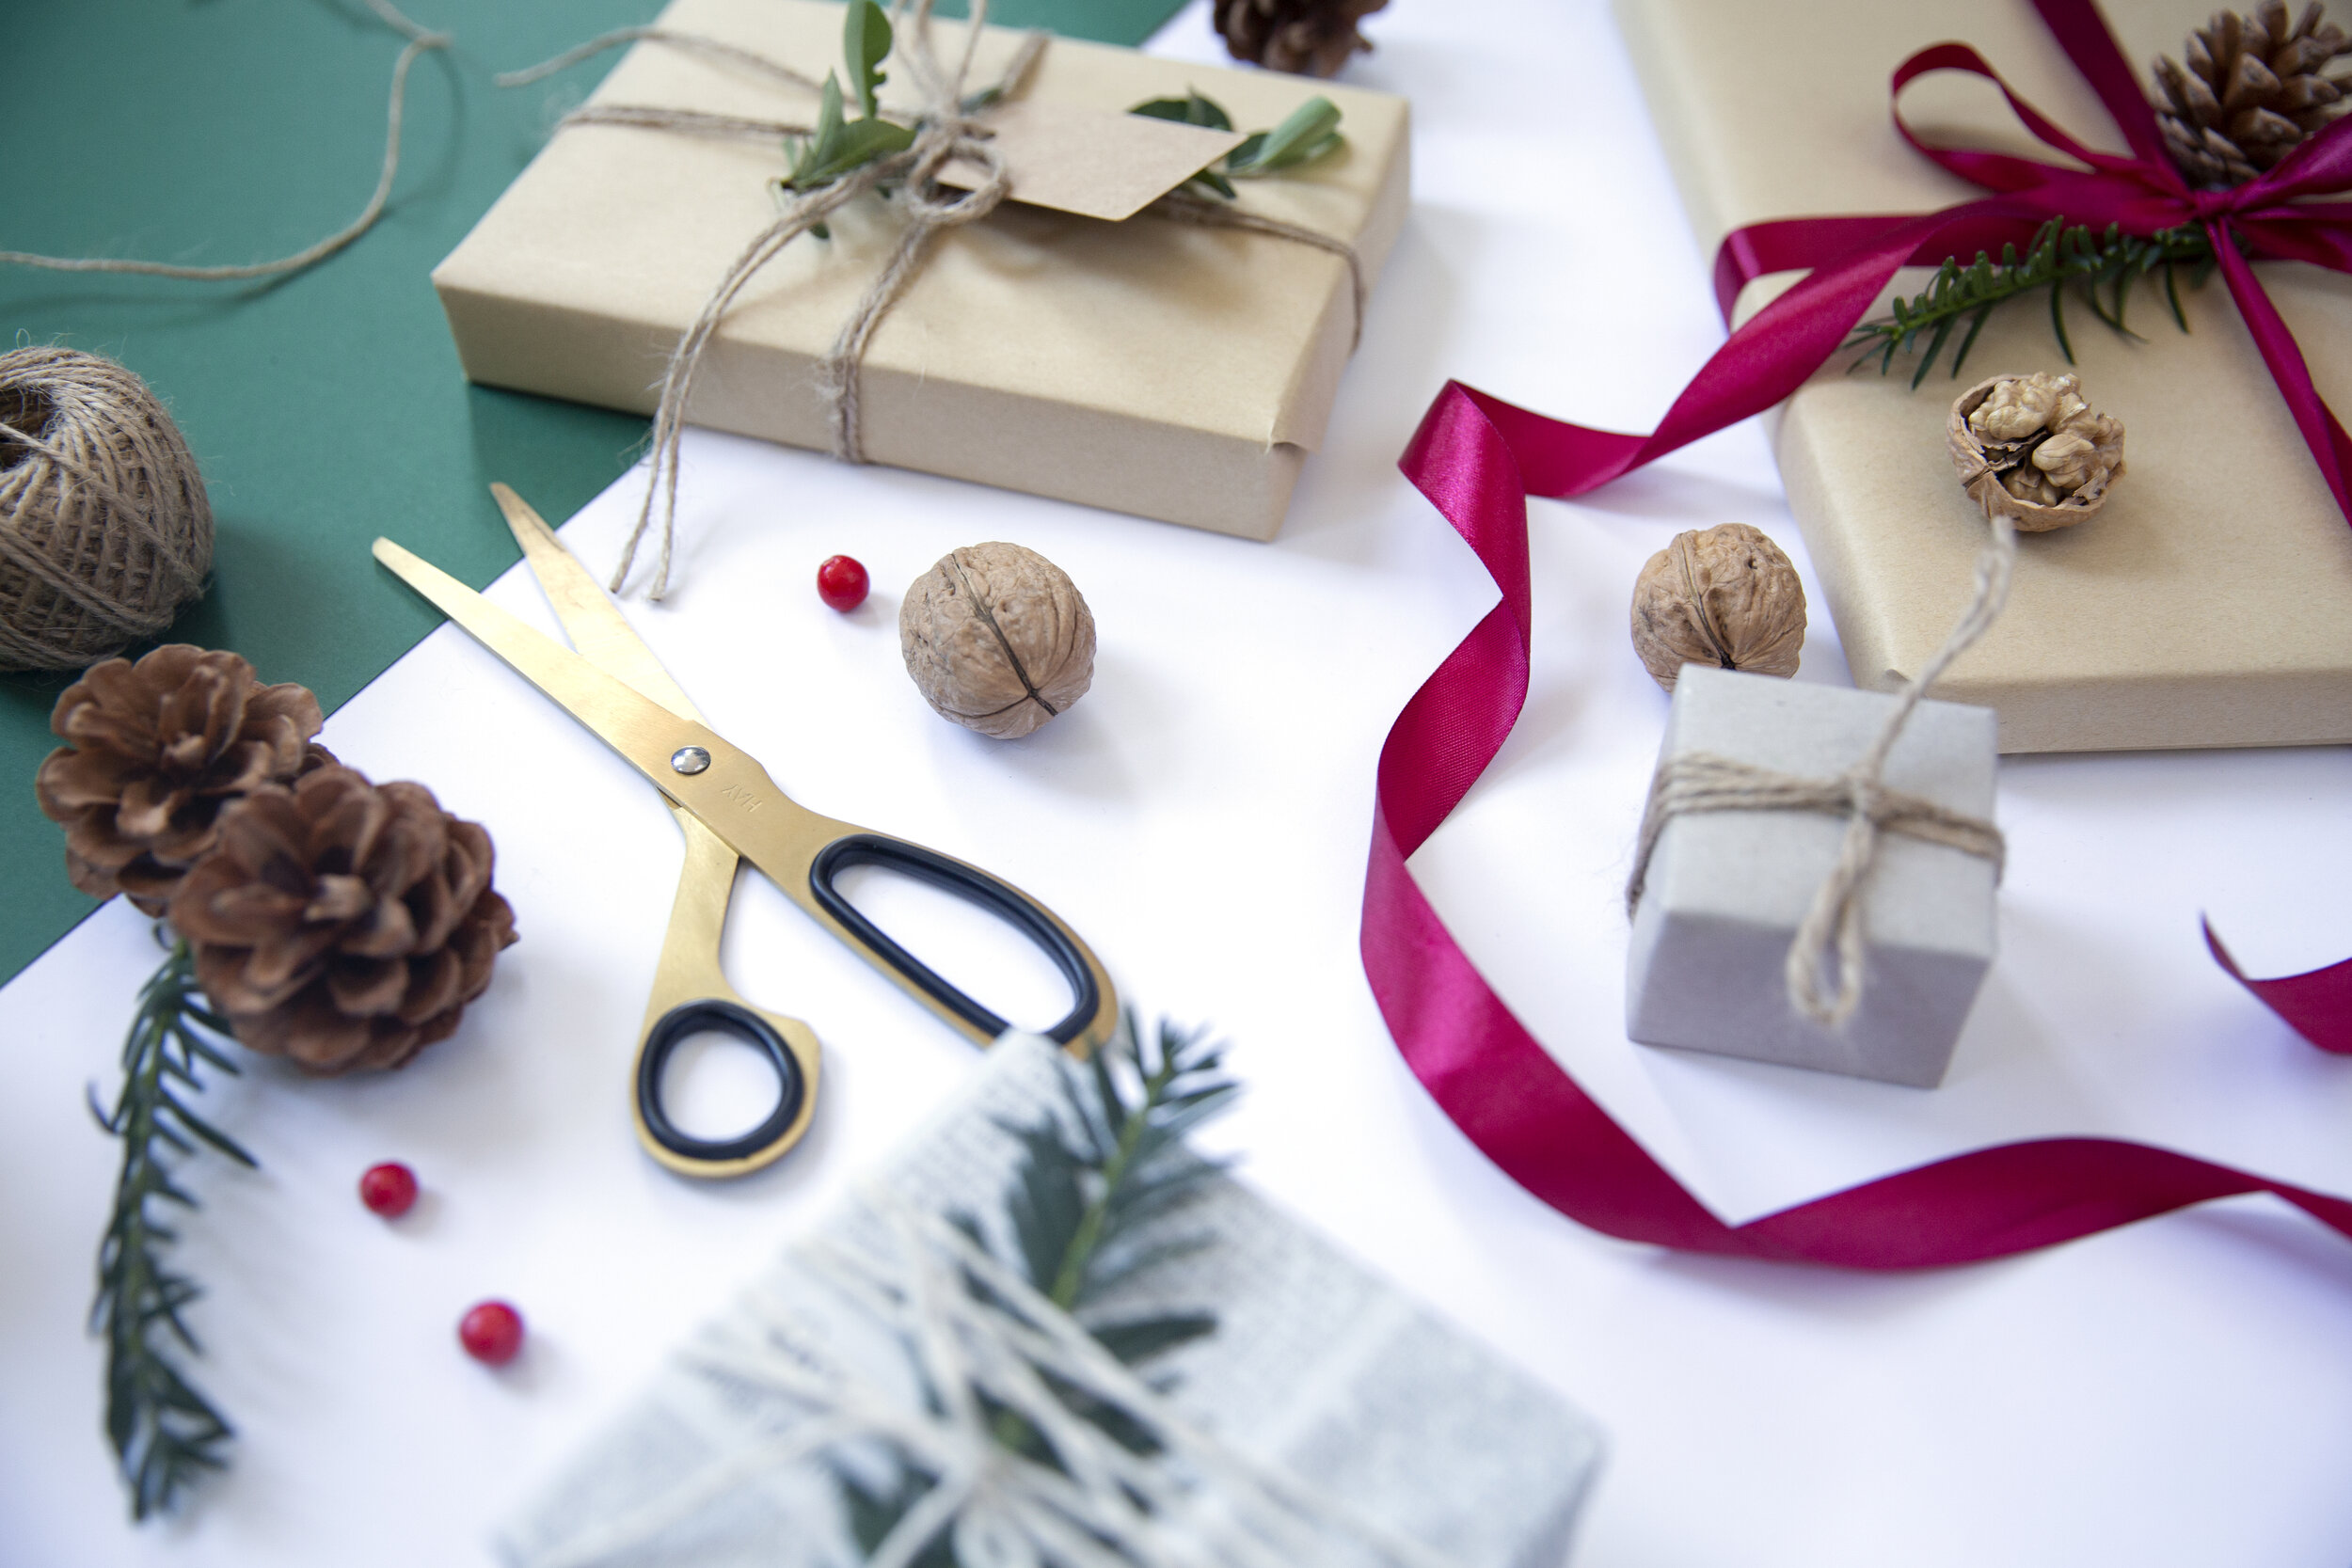 sustainable christmas gift wrapping WORKSHOP - Looking for something fun to do this festive season? Join me for a Sustainable Christmas Gift Wrapping Workshop at SMUG Design Store on Saturday 7th December.This workshop will give you the inspiration and tools you need to wrap your gifts this year with the planet in mind. There are plenty of ways to wrap your gifts more ethically (and save a few pennies along the way), whilst still making sure they look great under the tree.